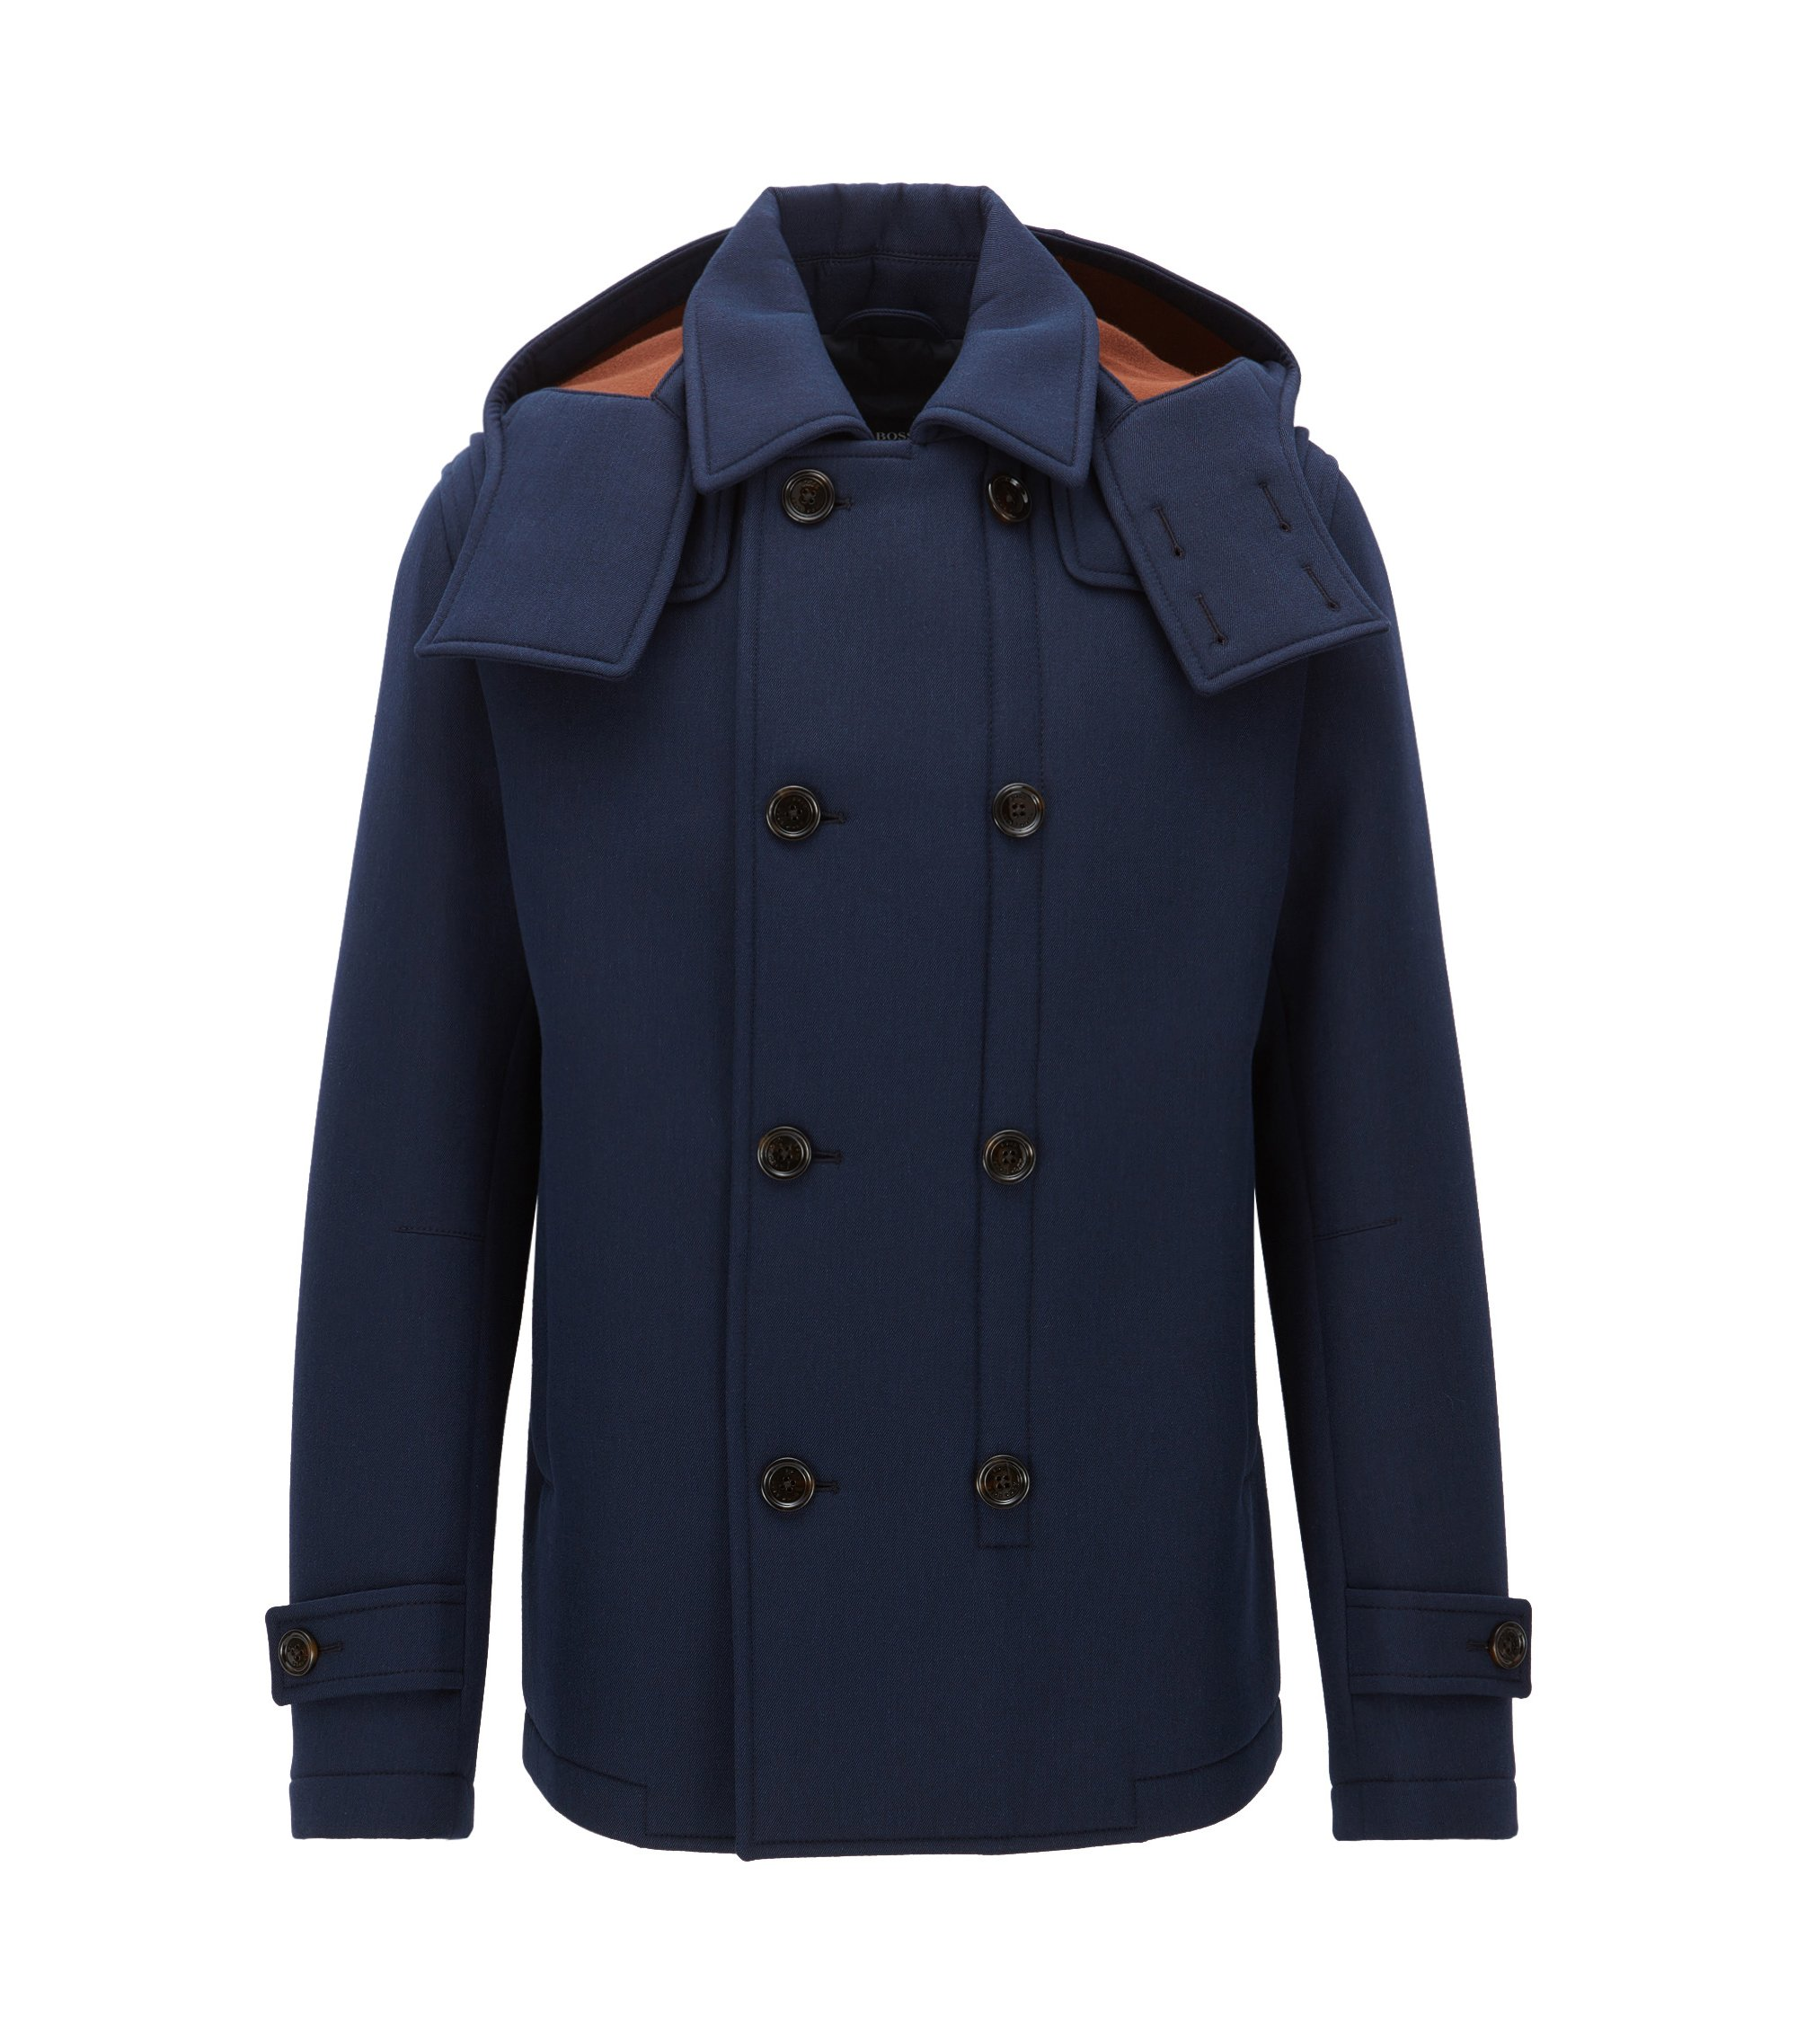 Stretch Virgin Wool Double-Breasted Jacket | Chatham, Dark Blue